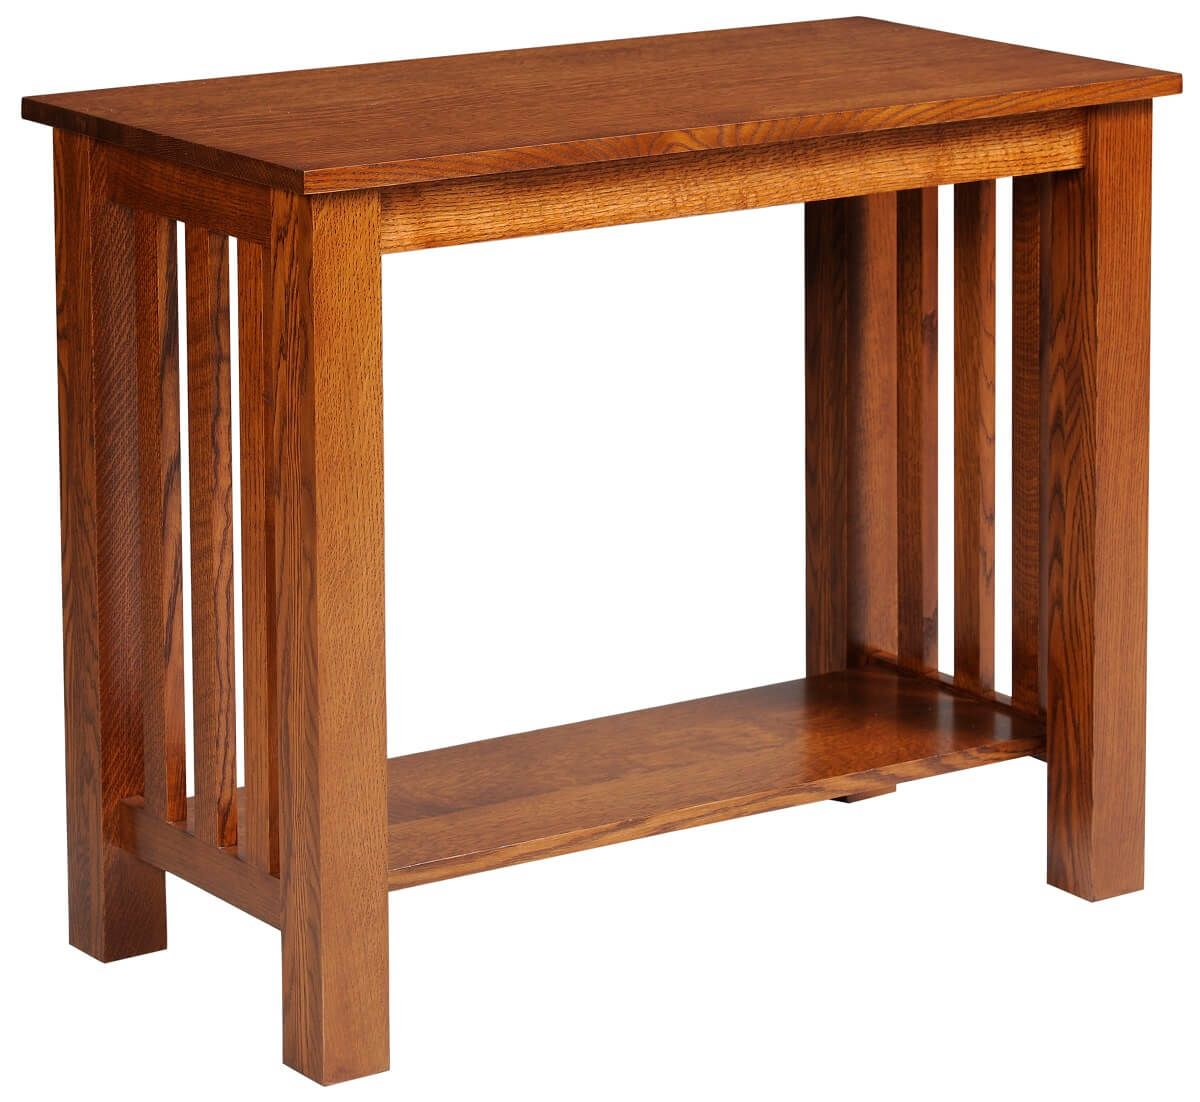 Arenas Valley Console Table